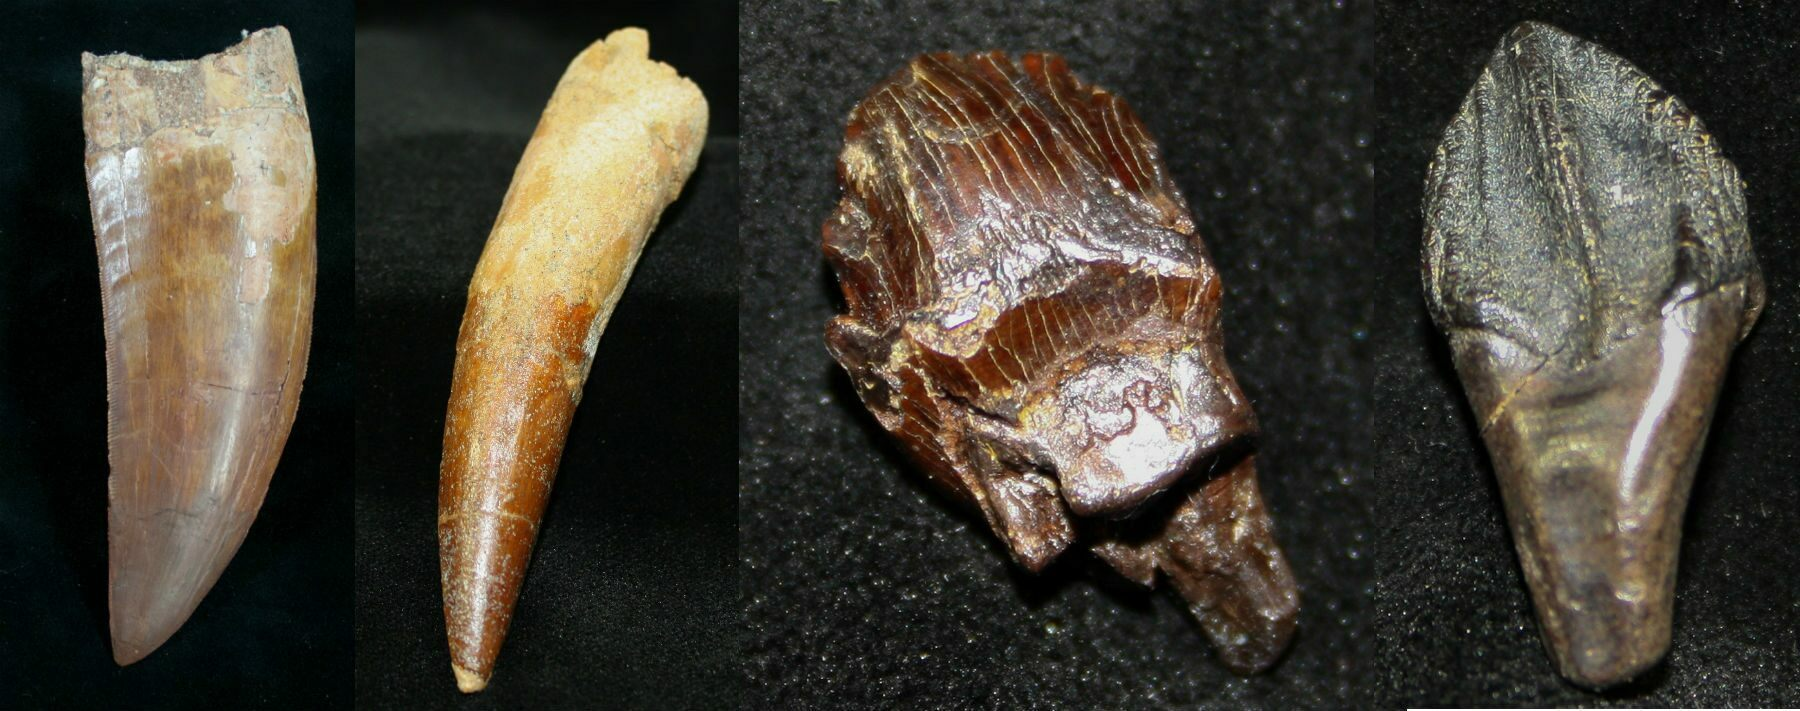 hight resolution of various dinosaur teeth